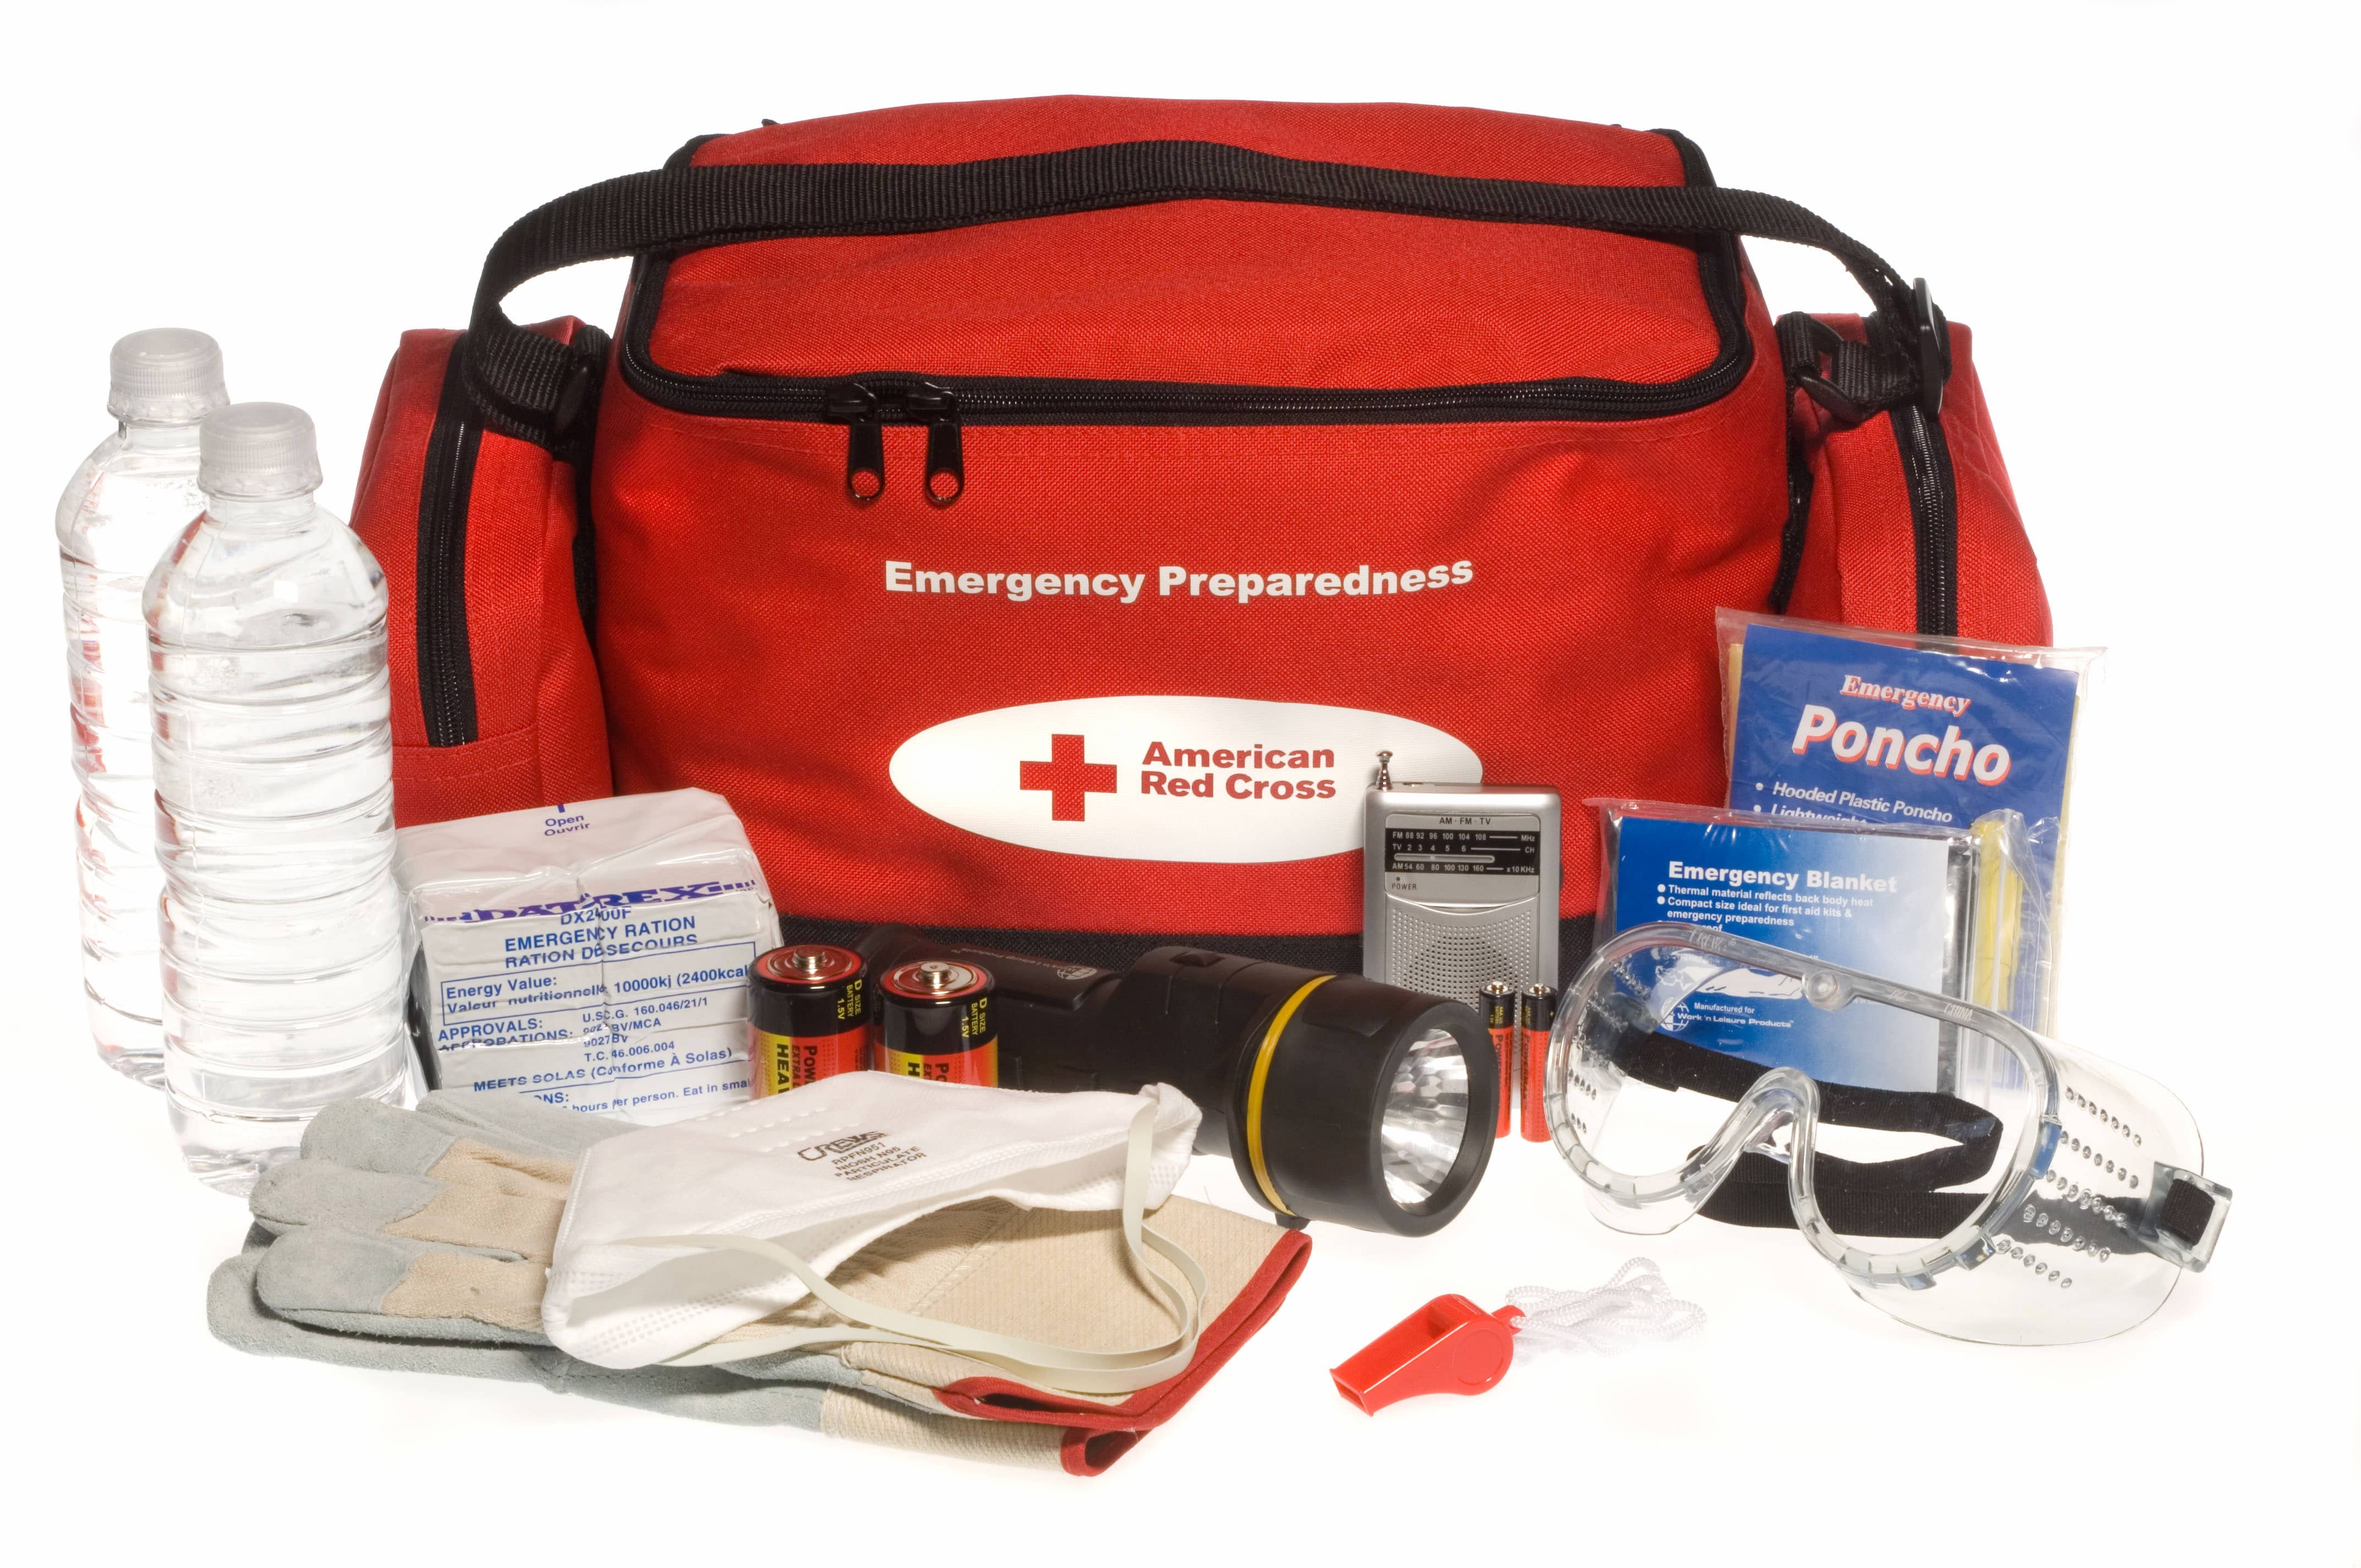 What should you pack in an emergency kit for your car?